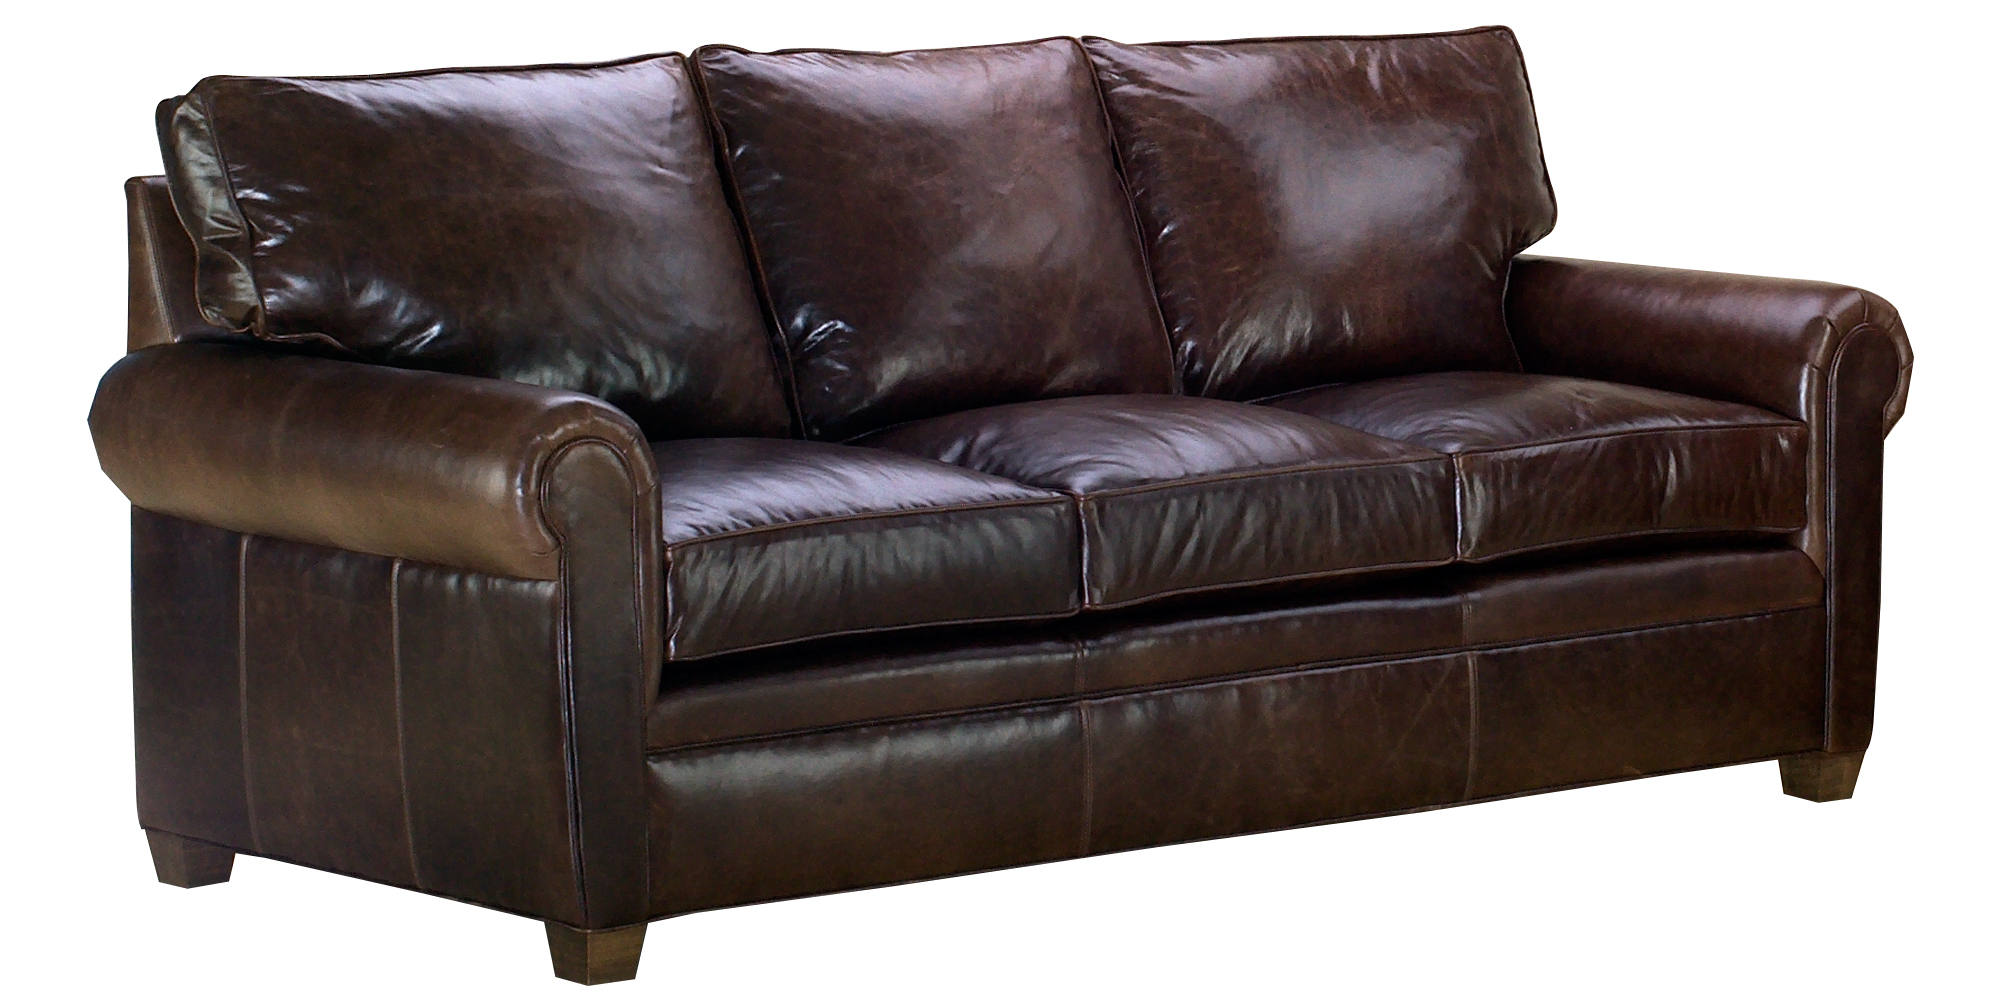 leather sofa couch carson mitc gold classic set with traditional rolled arms